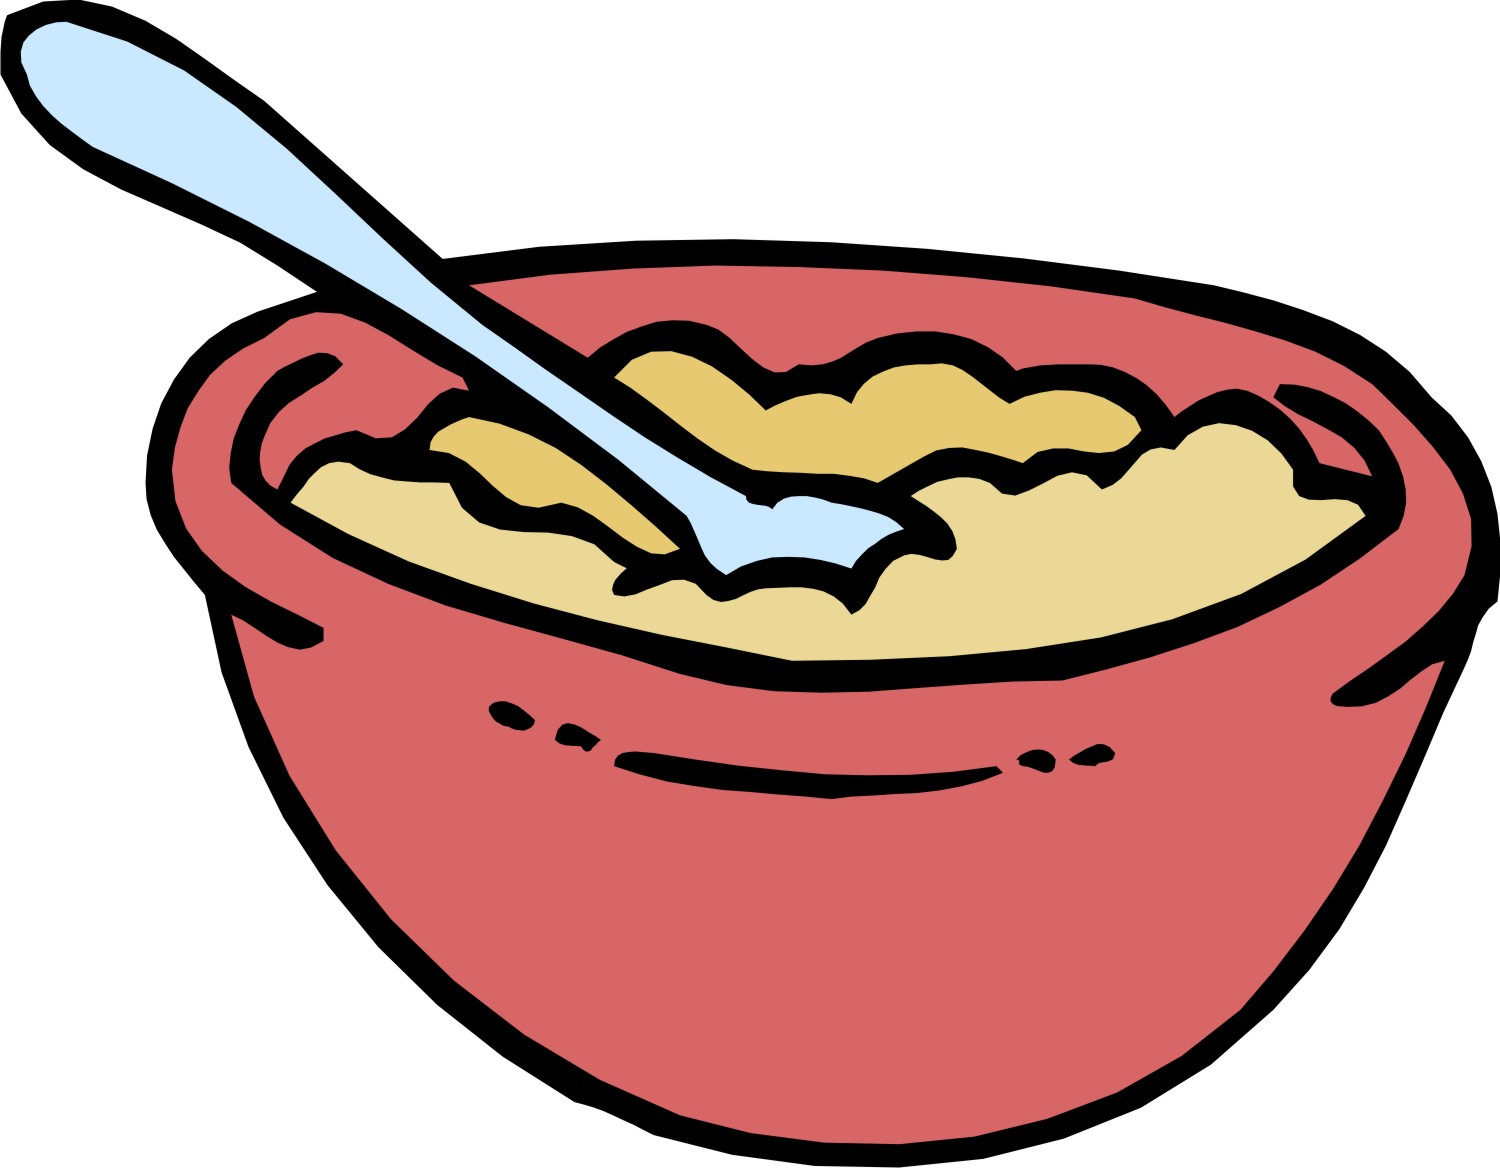 Cereal clipart bowl cereal. Clip art library